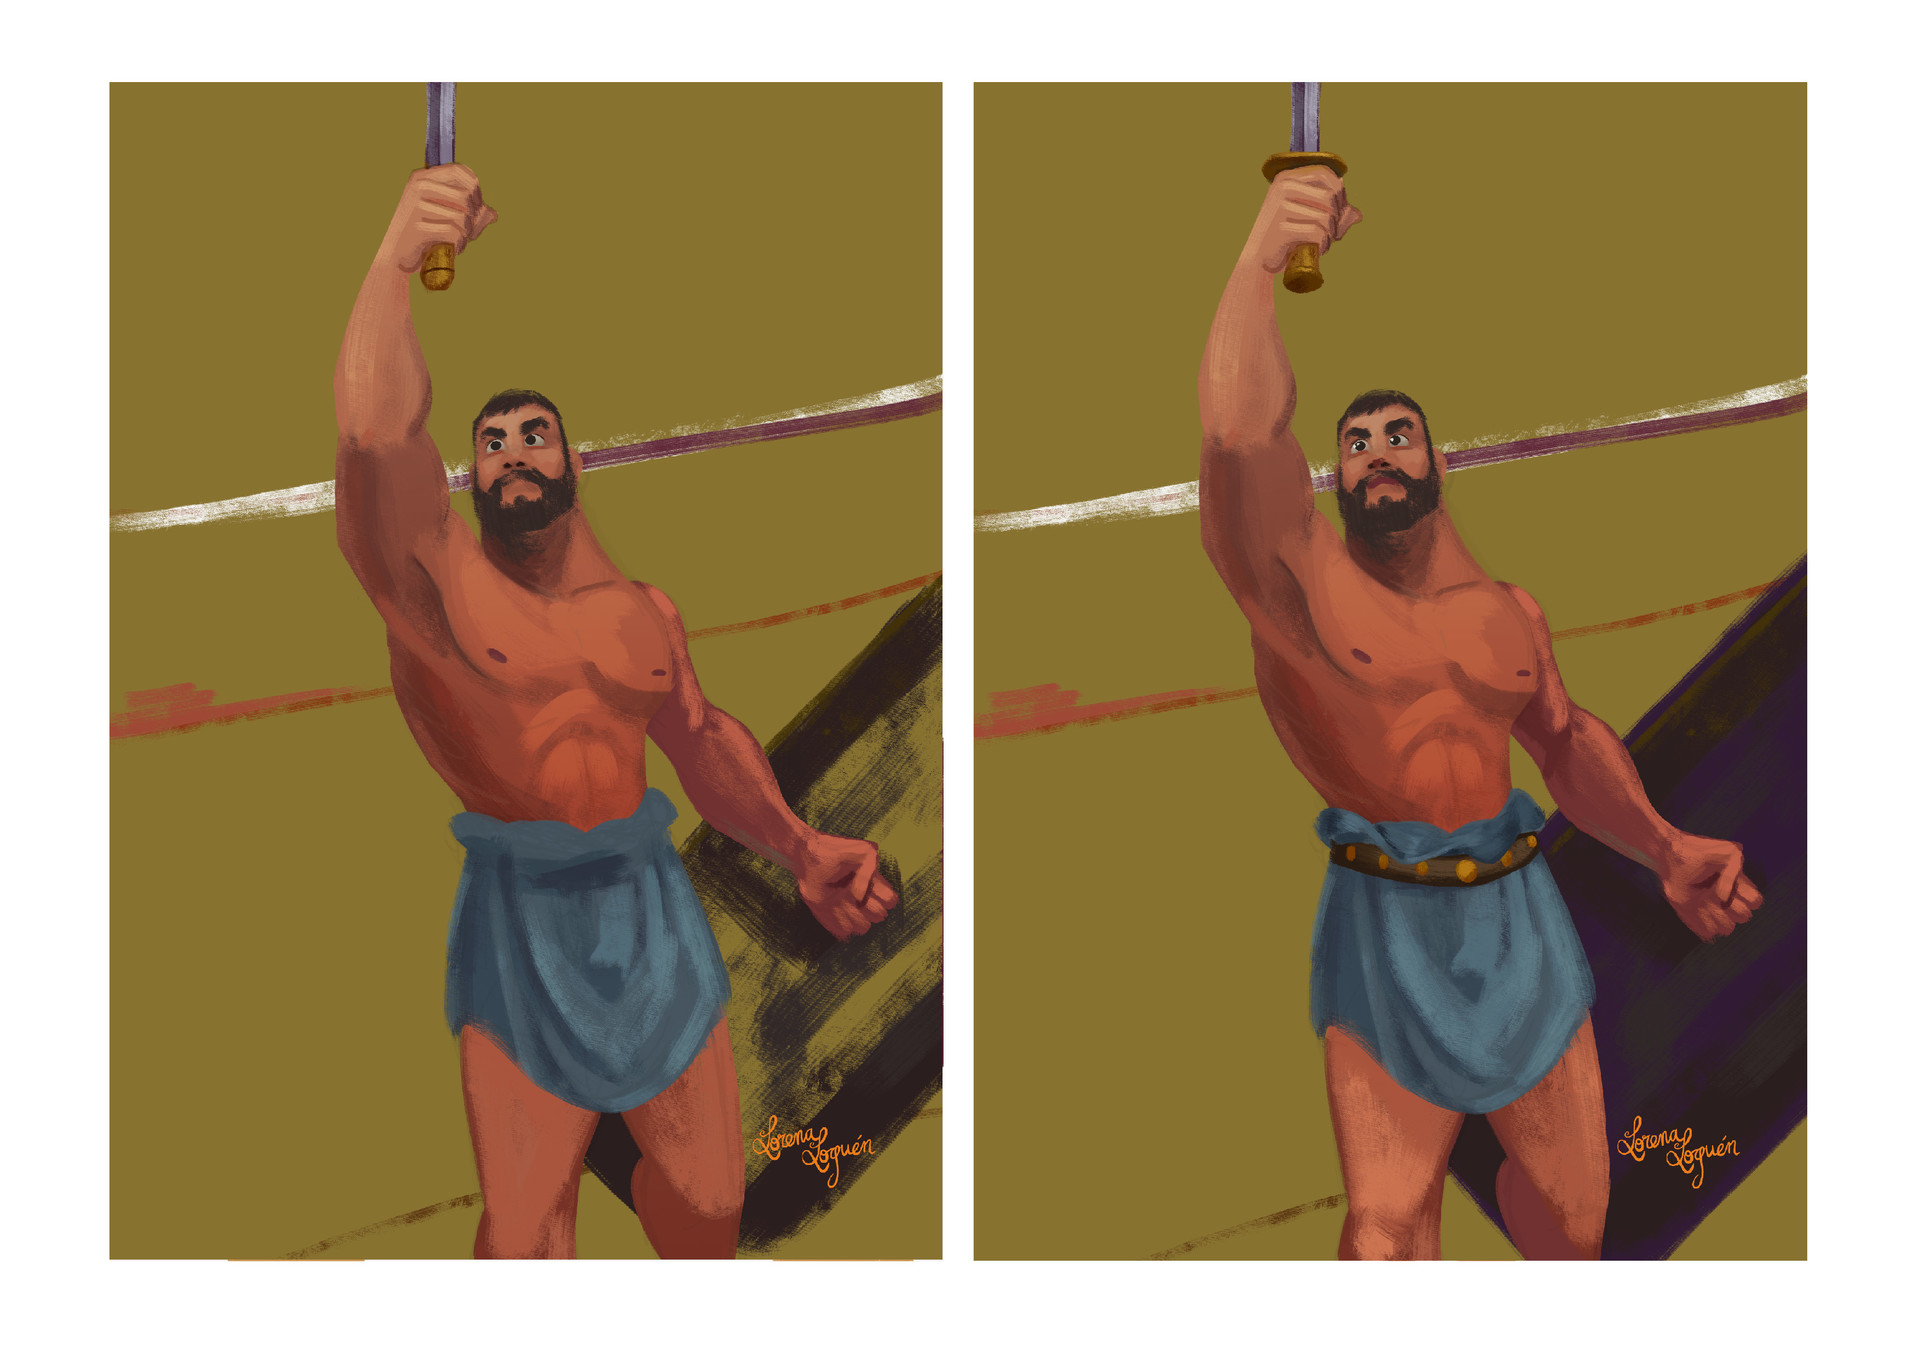 ...and muscles, and the skin tone of a gladiator had to be very dark. I used a gradient layer to make the lower part darker, this part was also meant to work less because my main focus was the face/torso/hand of the sword.